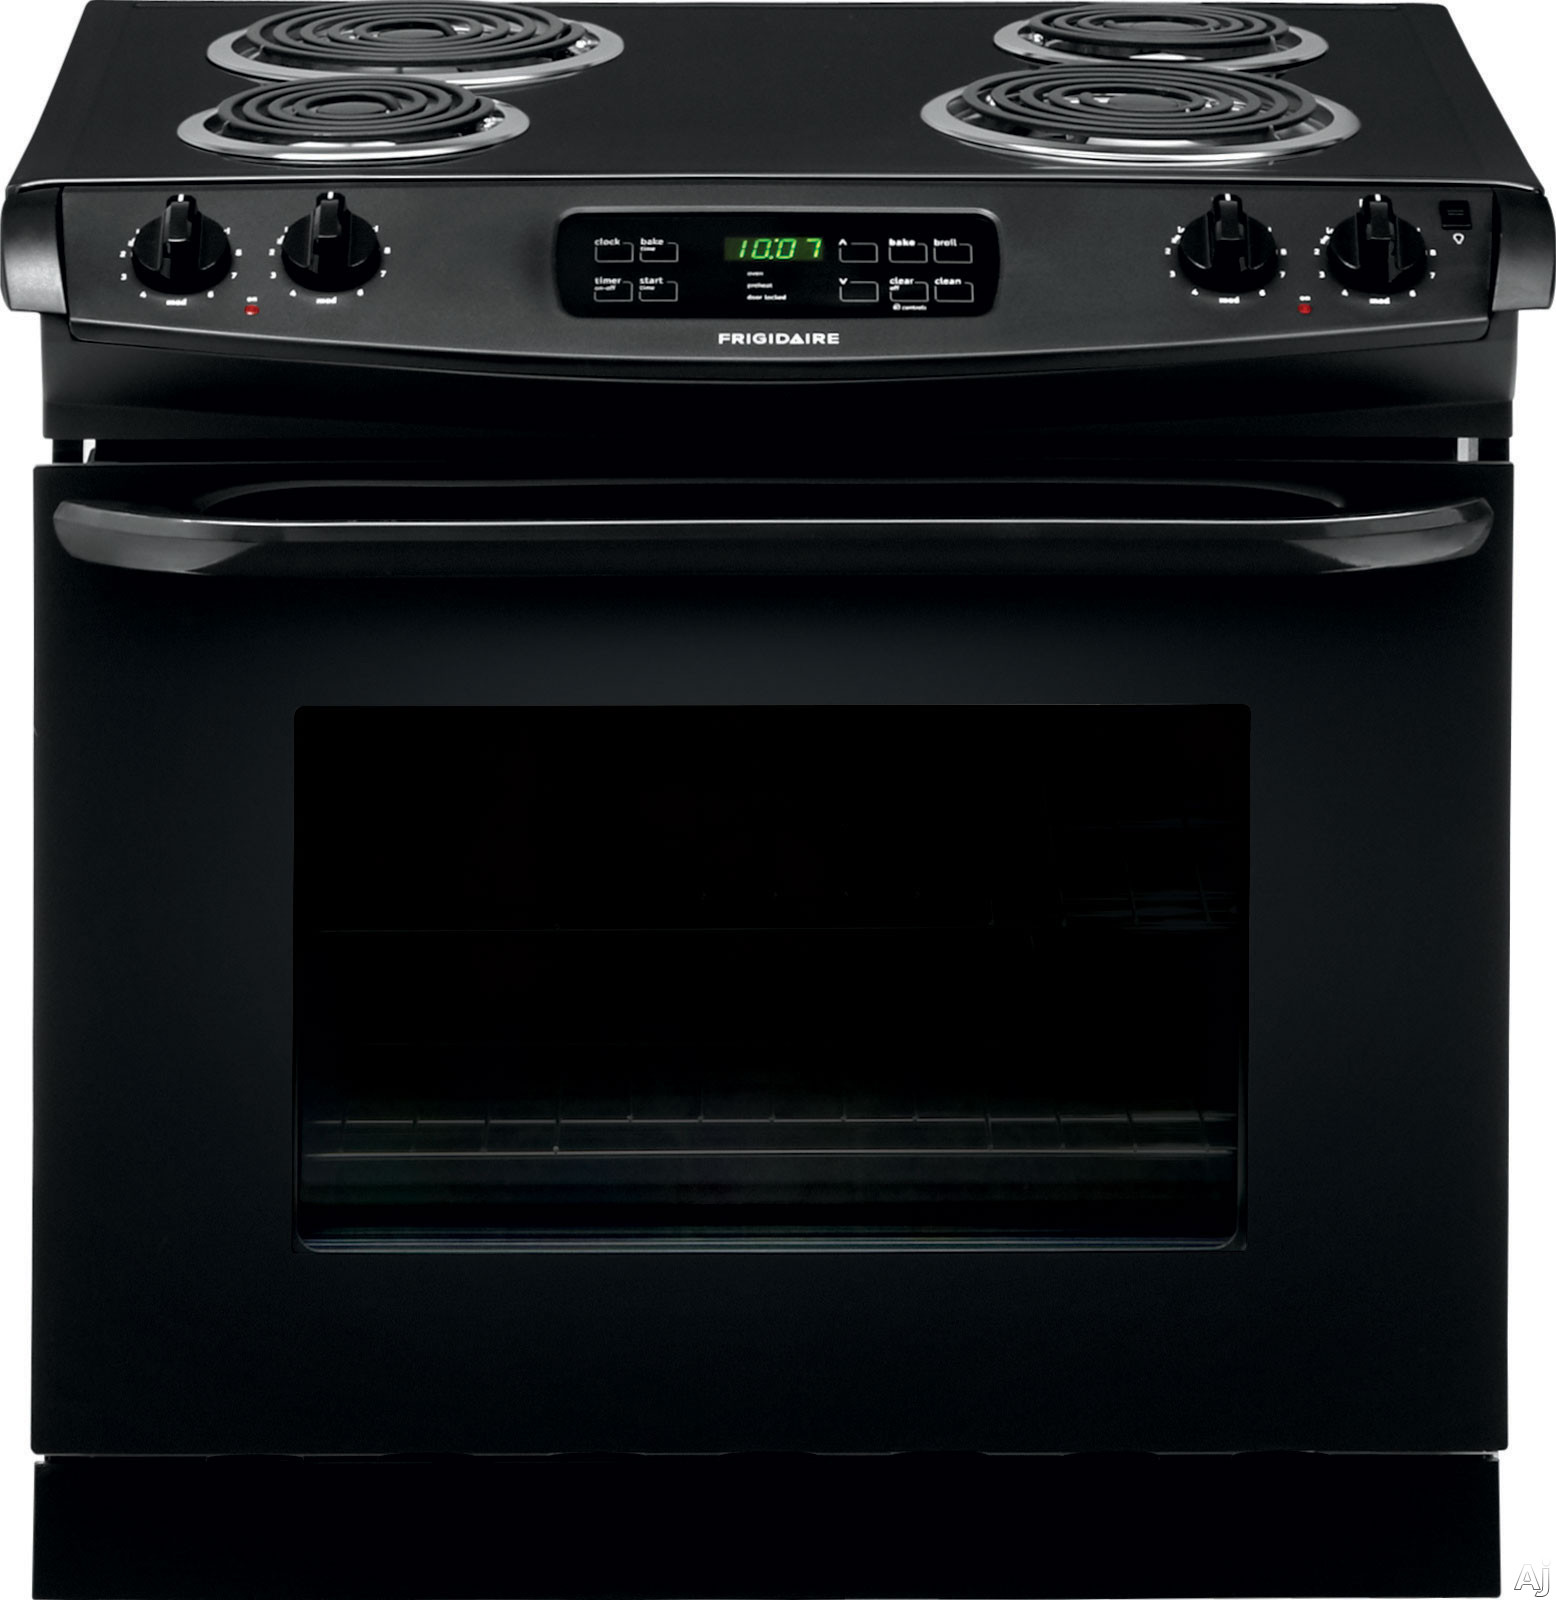 Frigidaire FFED3015P 30 Inch Drop-in Electric Range with Multiple Broil Options and Ready-Select Controls, Self-Clean, 4 Coil Elements, 4.6 cu. ft. Oven and ADA Compliant